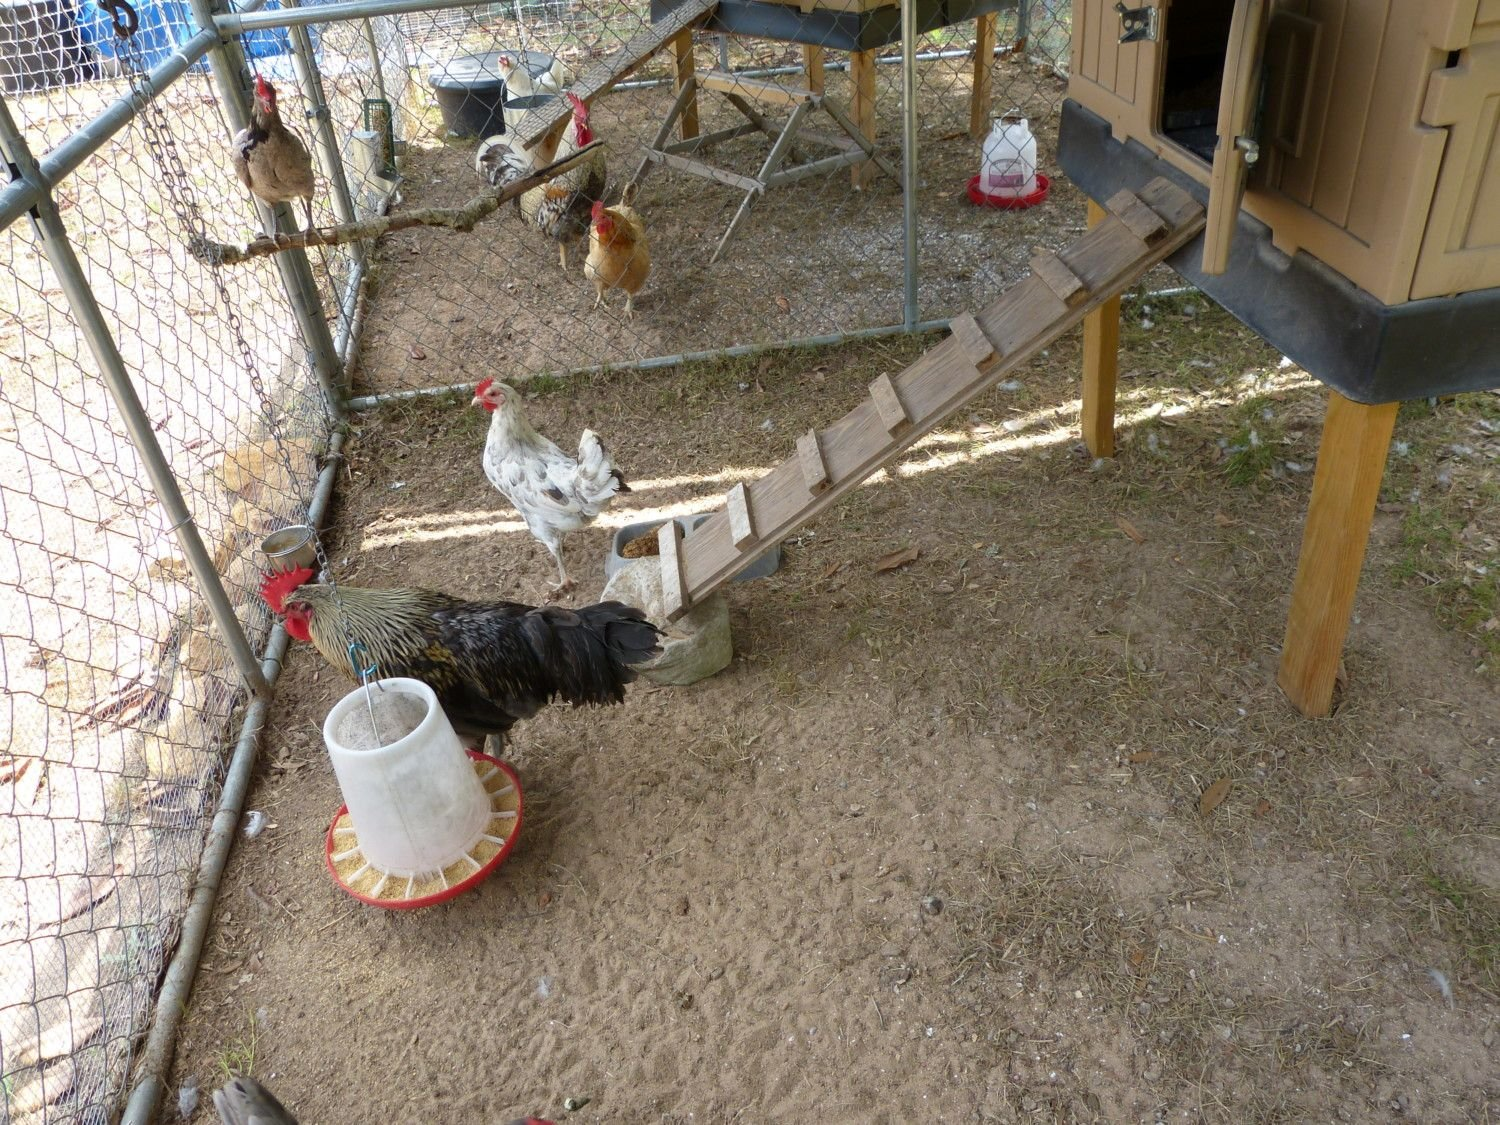 Jottings Backyard Chickens The Cluck Diagram Of A Chicken Notice How Interiors Pens Are Down To Bare Dirt Or Nearly So